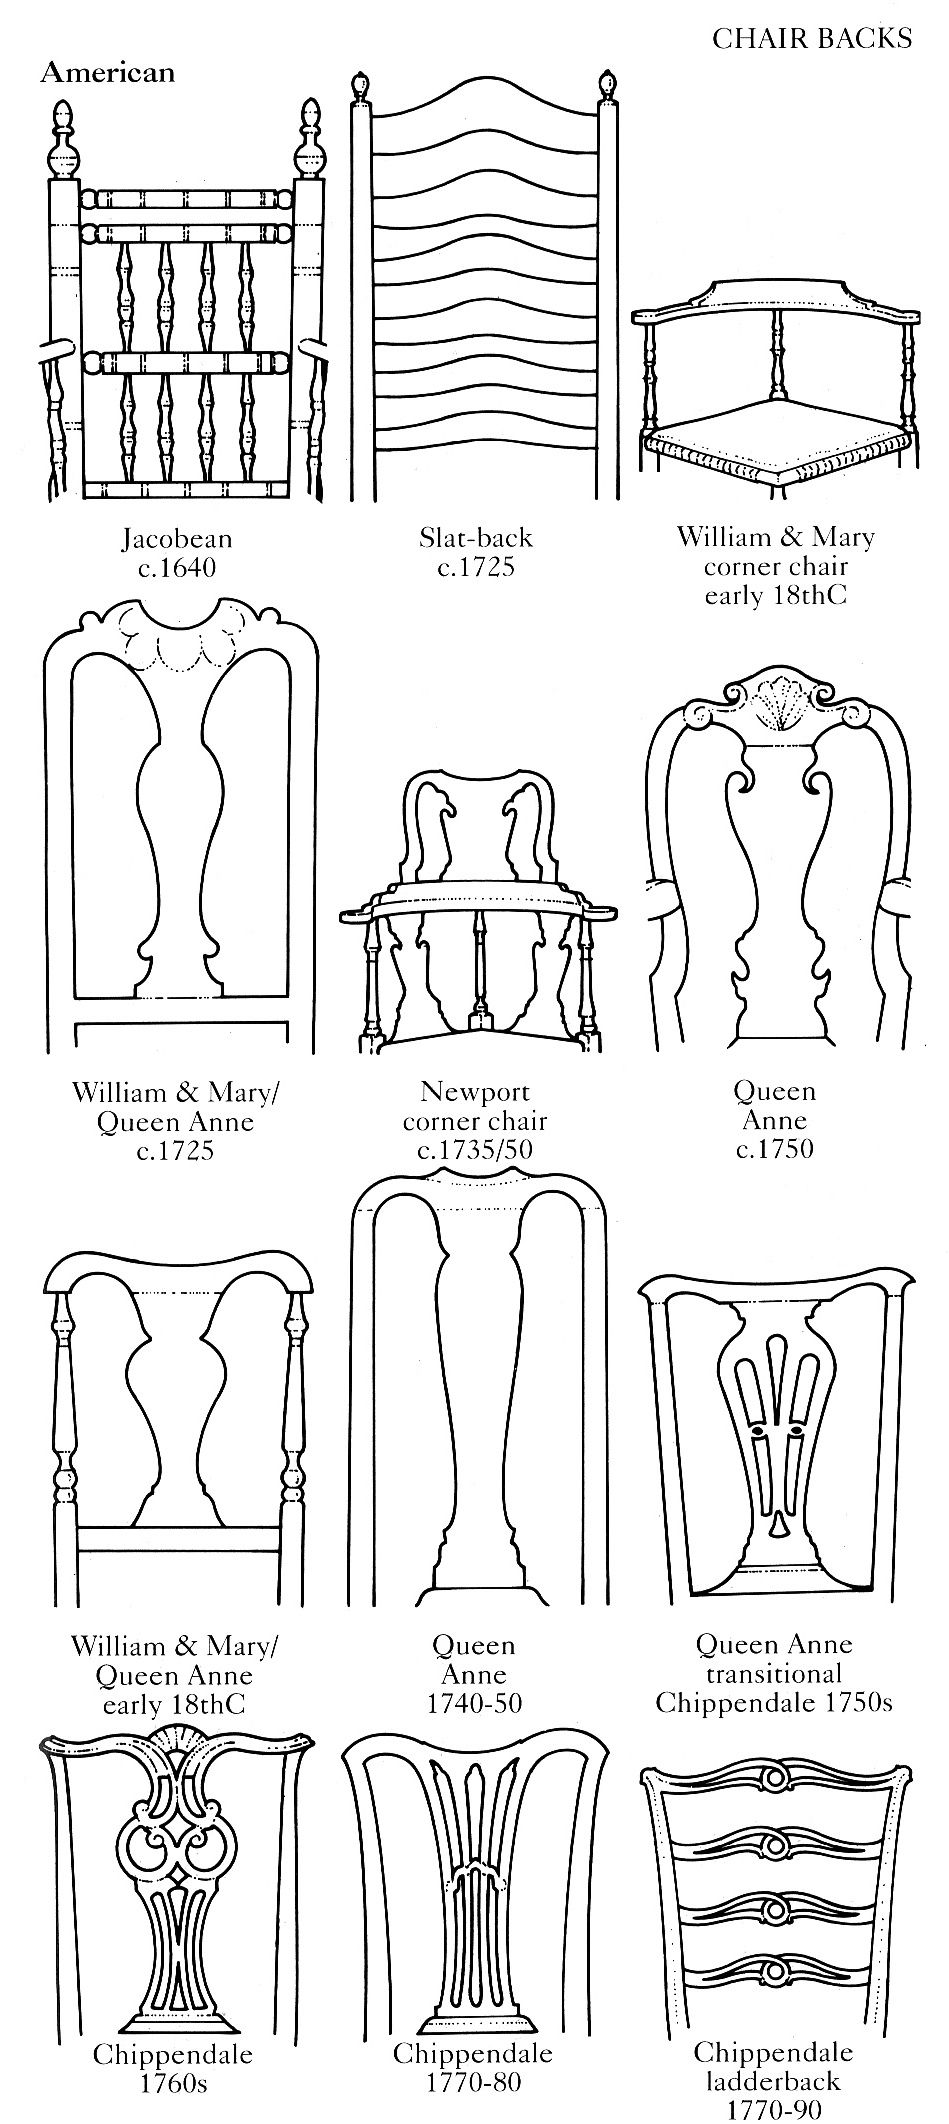 Furniture styles examples - Find This Pin And More On Diagrams Of Antique Furniture By Spaldingnix